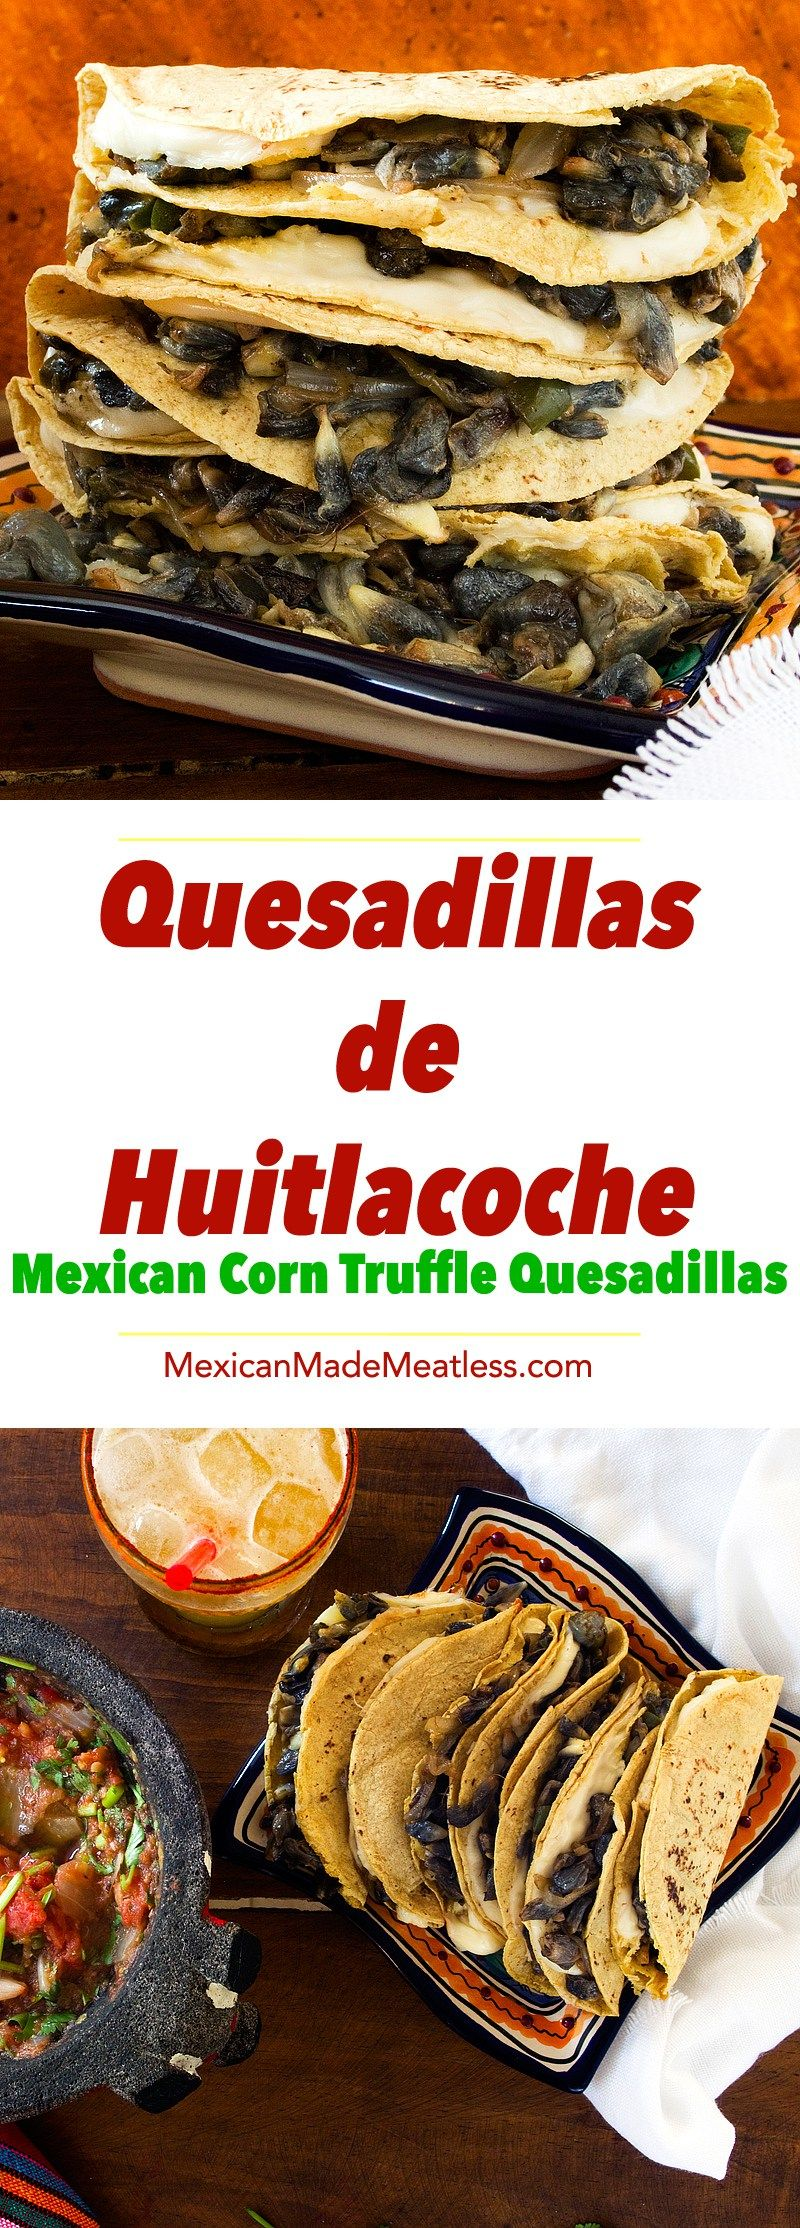 Corn Truffle Quesadillas With Chunky Salsa A Perfect Lunch And Introduction To Huitlacoche Vegetarian Mexican Recipes Mexican Food Recipes Huitlacoche Recipe